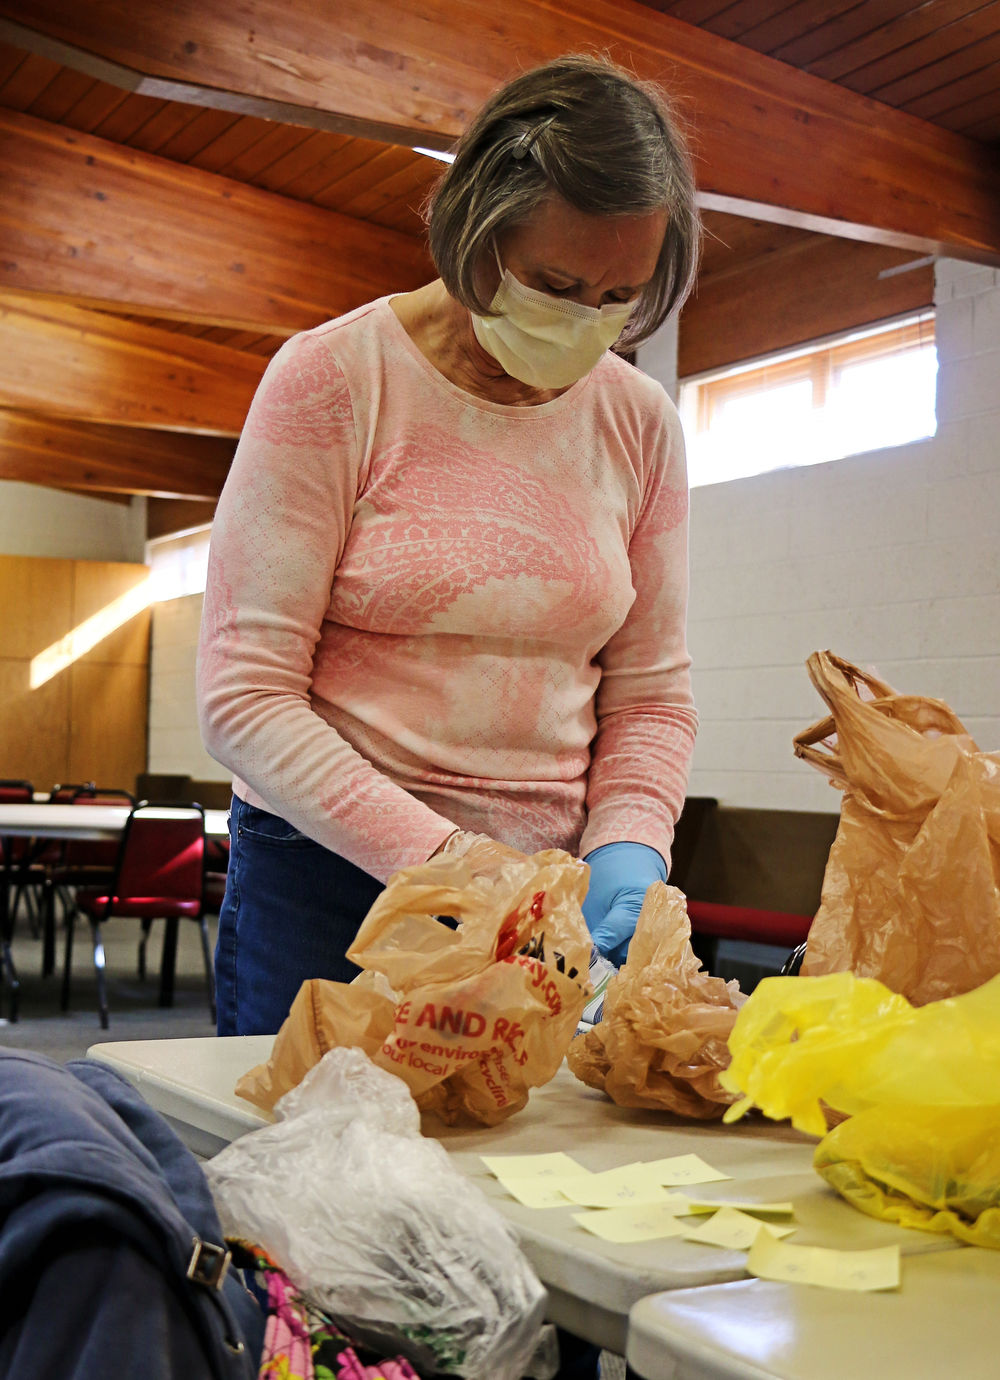 Helping out, one mask at a time: Local volunteers put crafting skills to use, making masks for health care workers